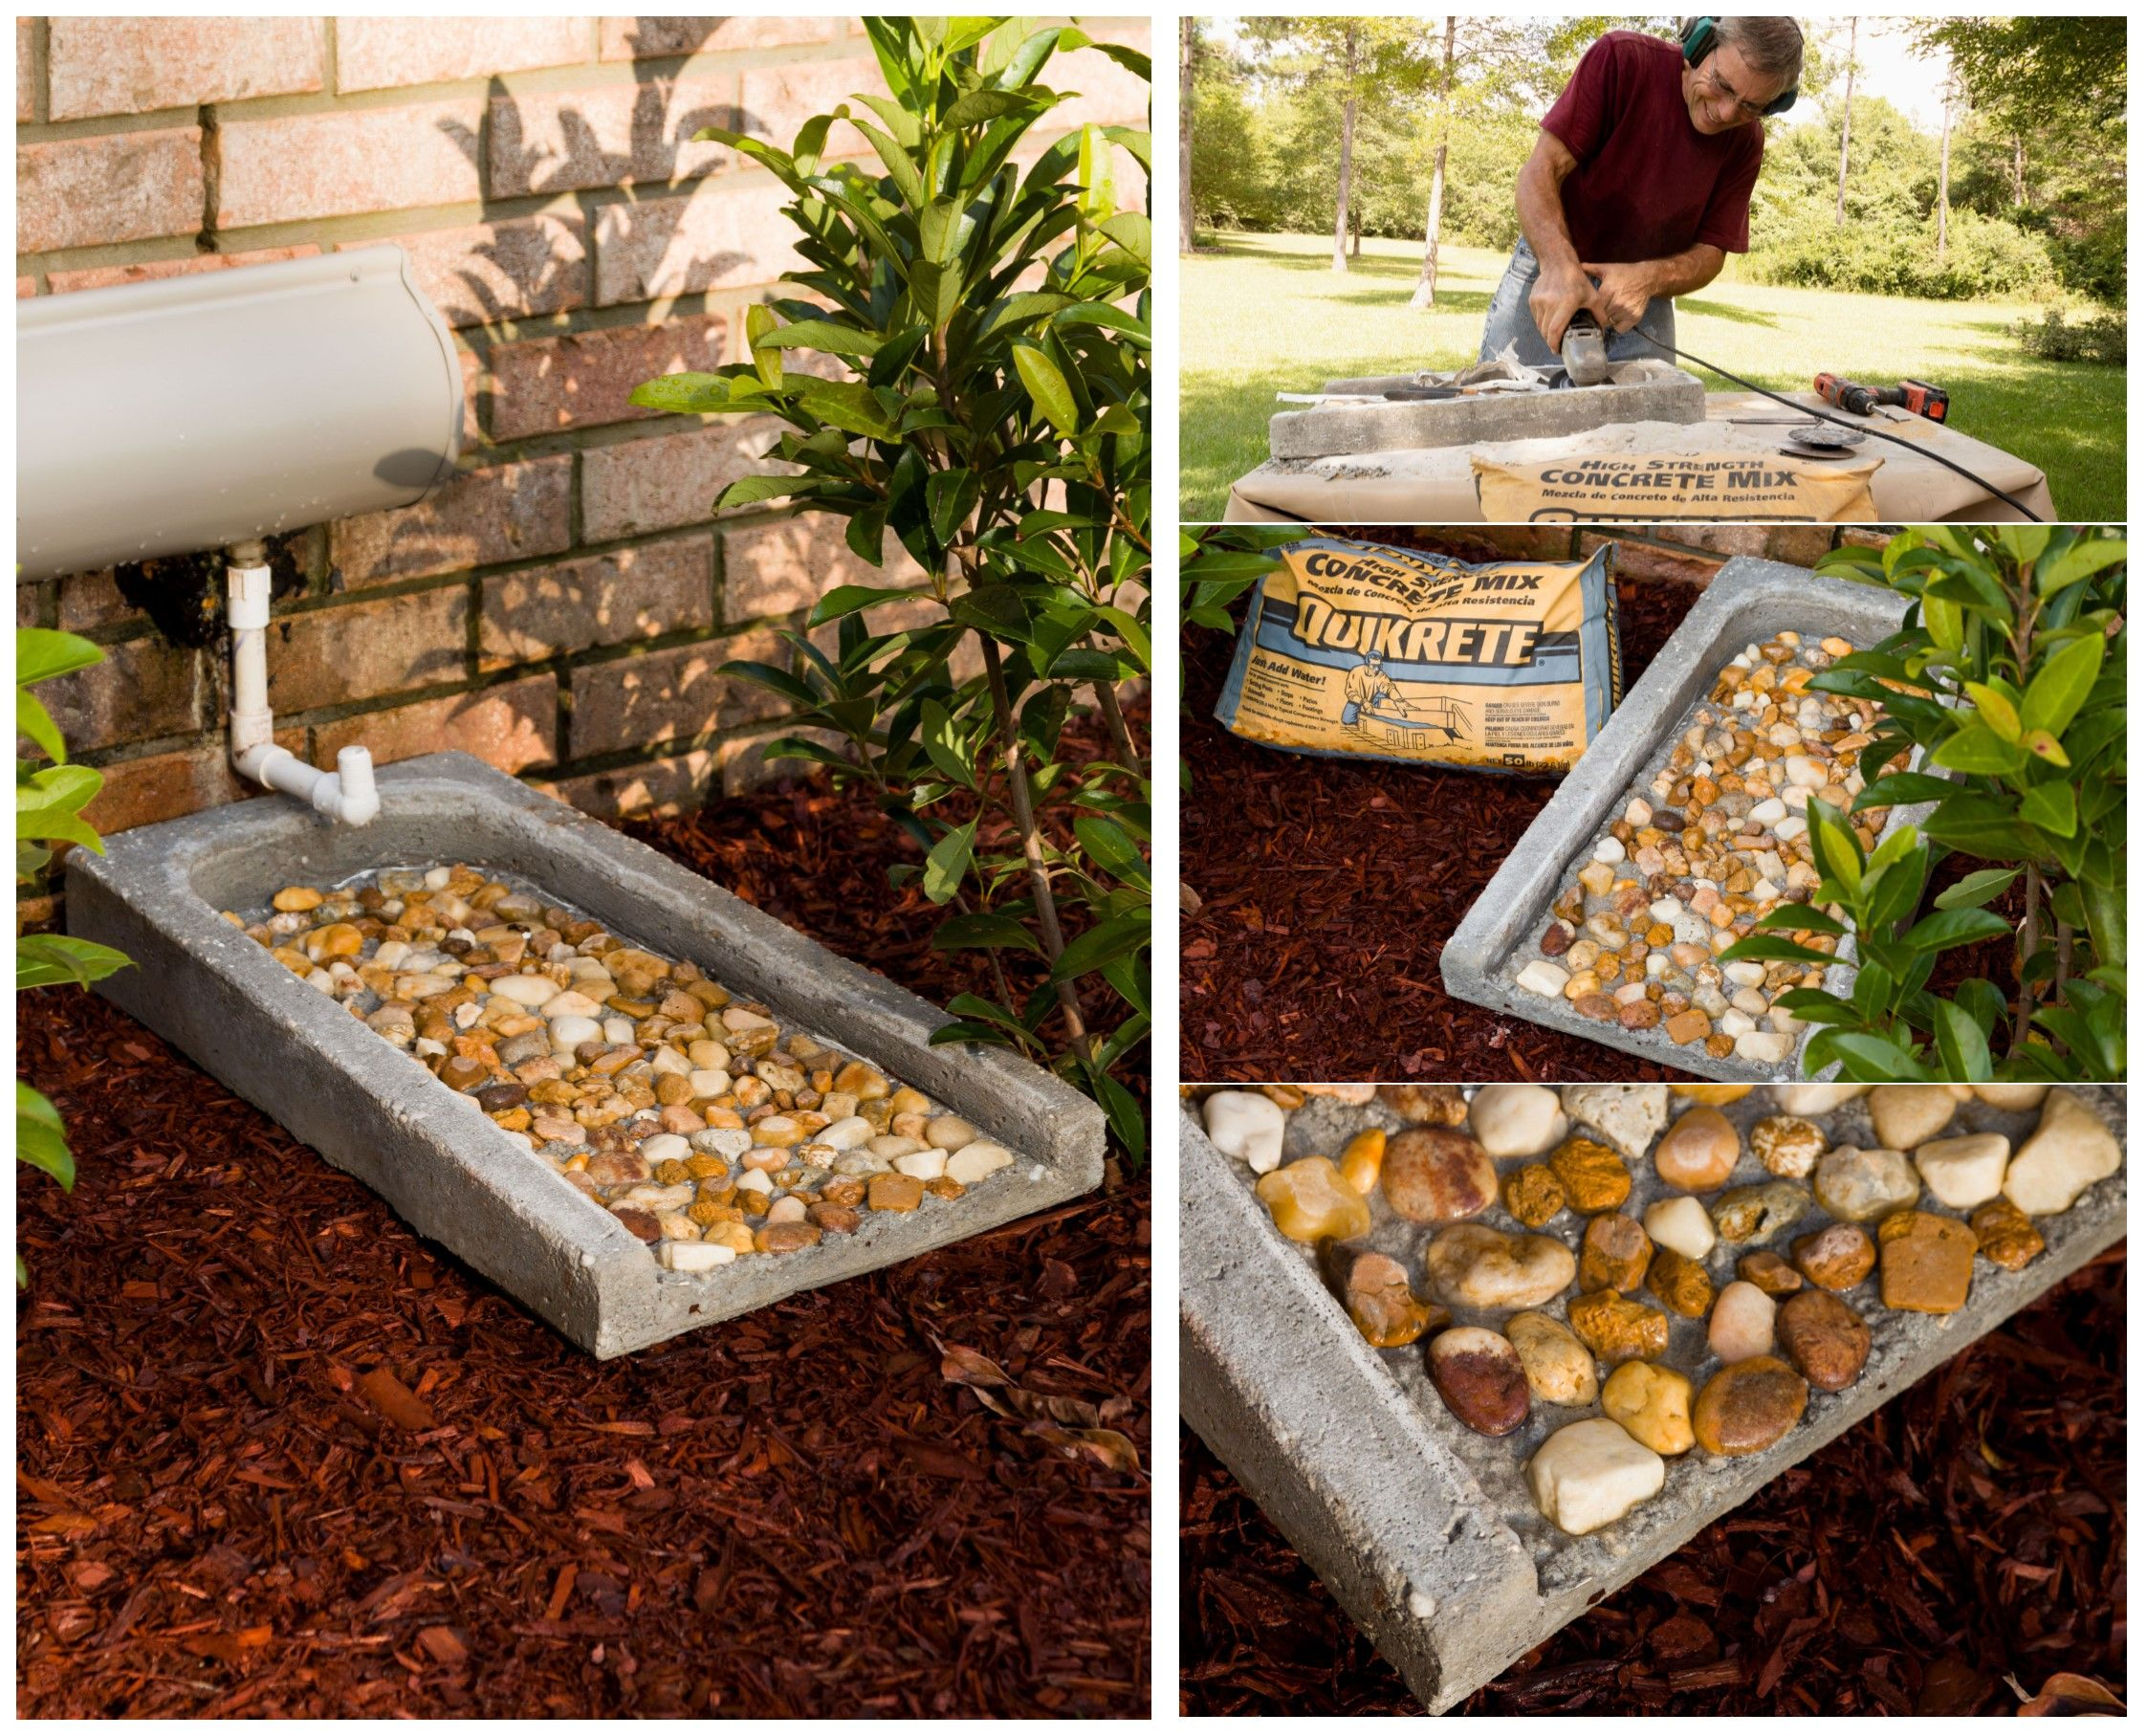 Pin By Quikrete On Diy Yard Garden Projects Splash Blocks Concrete Diy Backyard Projects